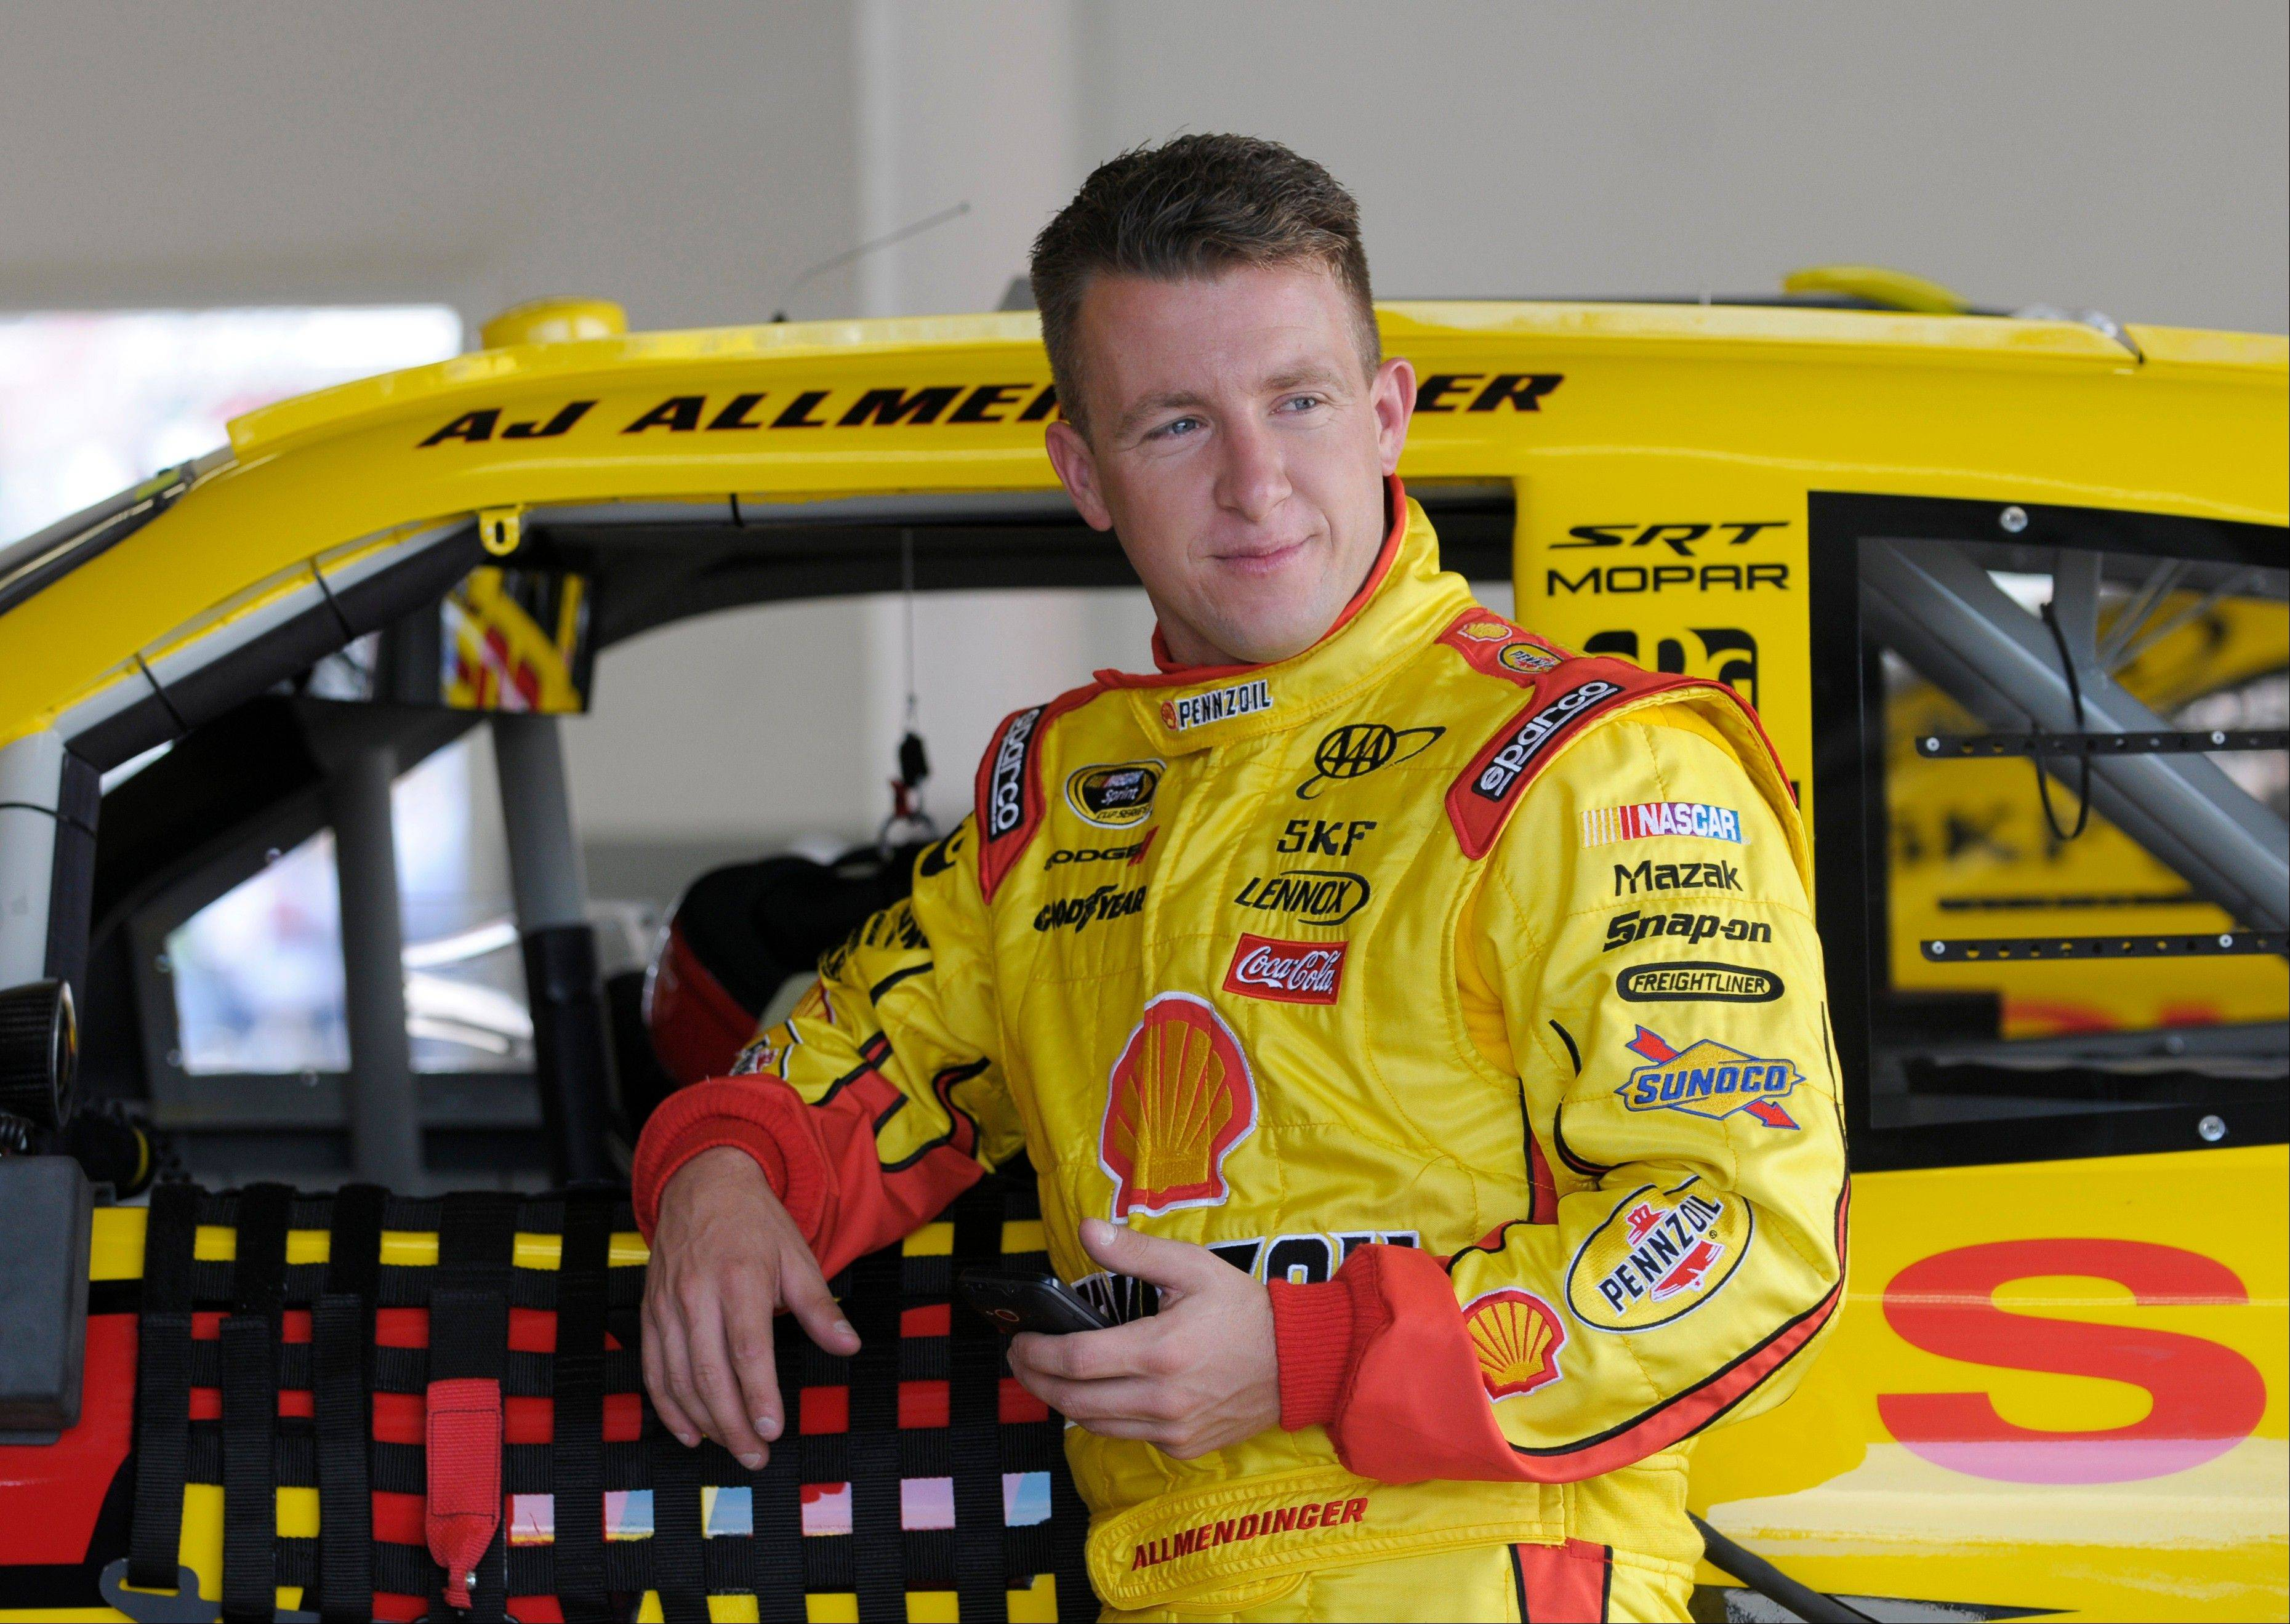 Allmendinger suspended following failed drug test